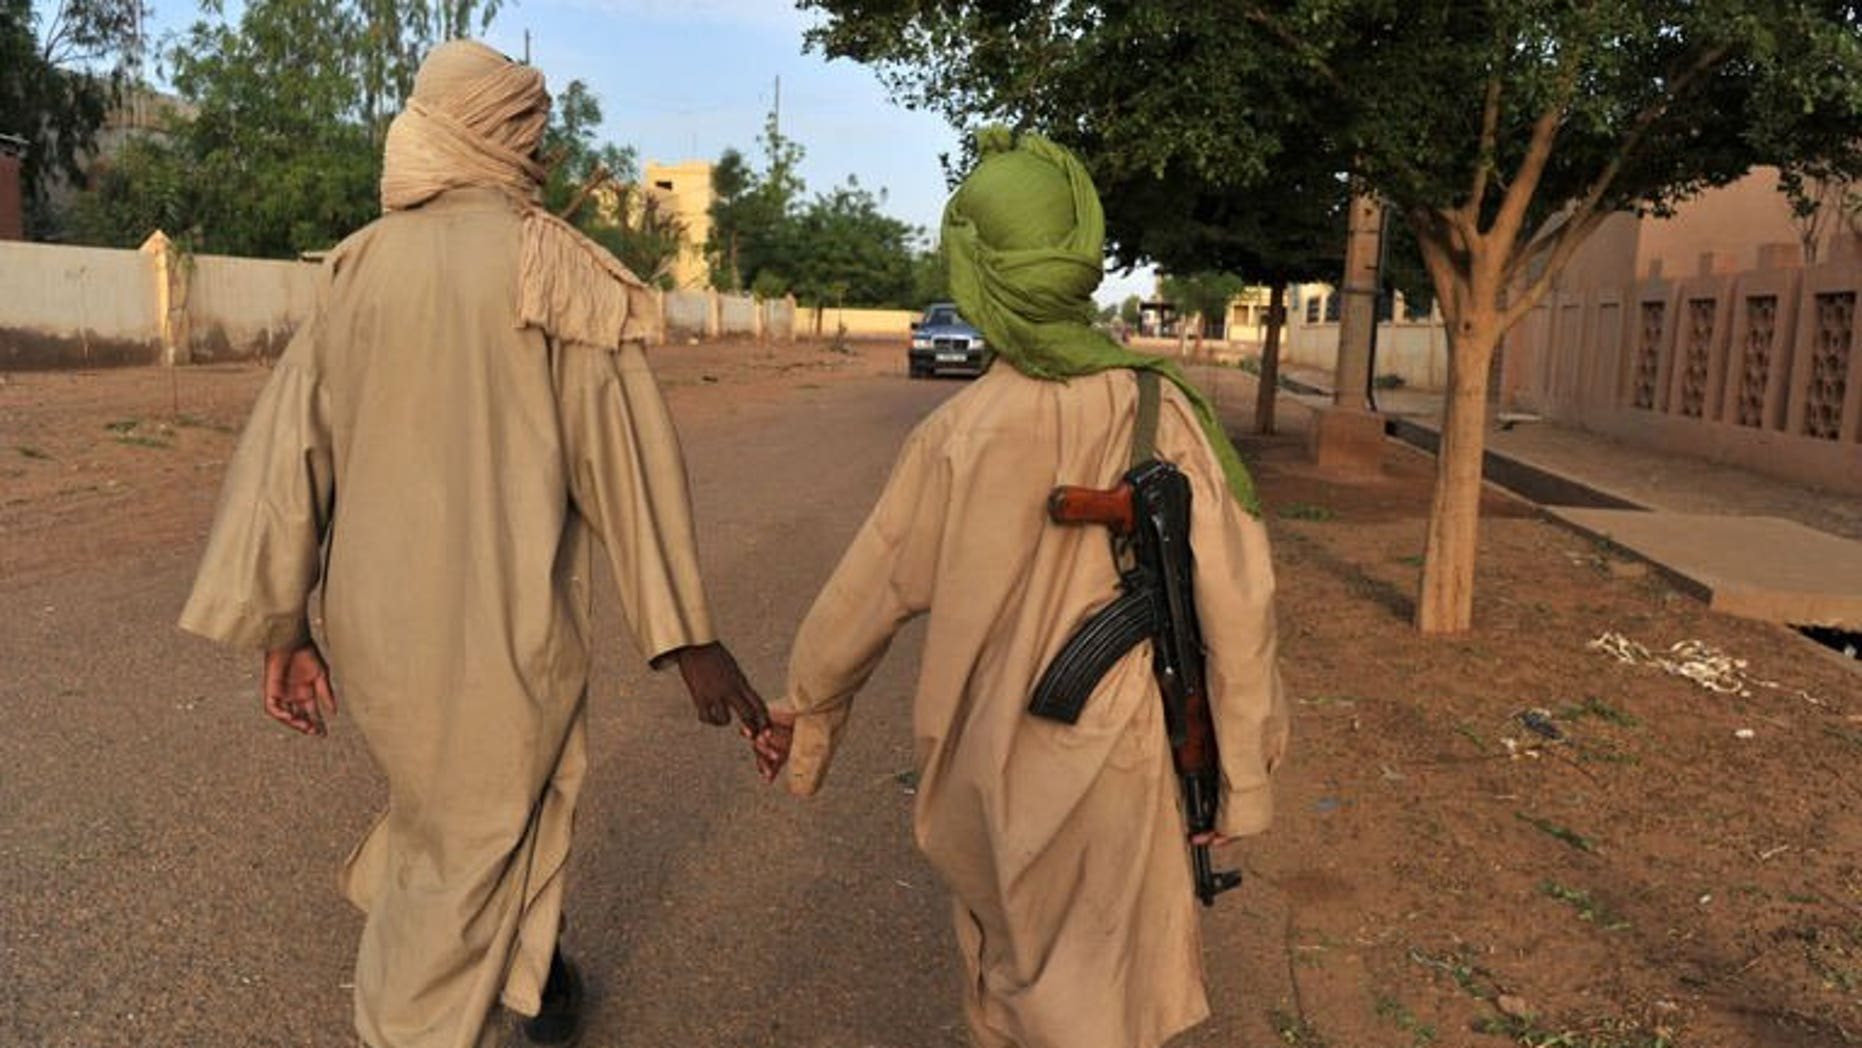 Two young fighters of an Islamist group walk in the streets of Gao city in Mali on July 17, 2012. Gunmen have abducted four polling staff and a local official in the northern Malian town of Tessalit, a week before a presidential poll meant to restore the country's unity, a local official said.